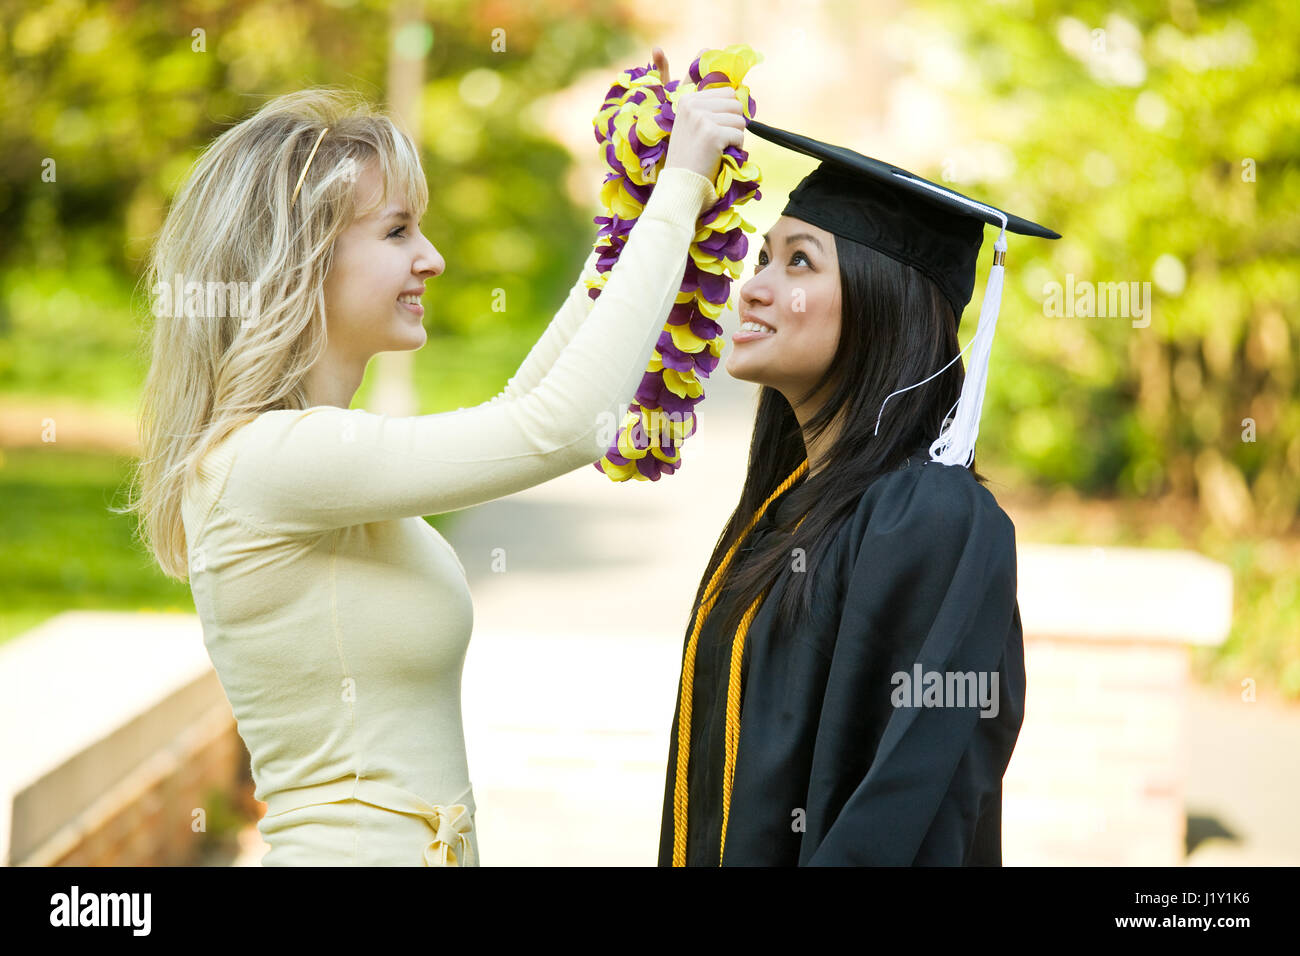 A happy beautiful graduation girl being congratulated by her friend - Stock Image